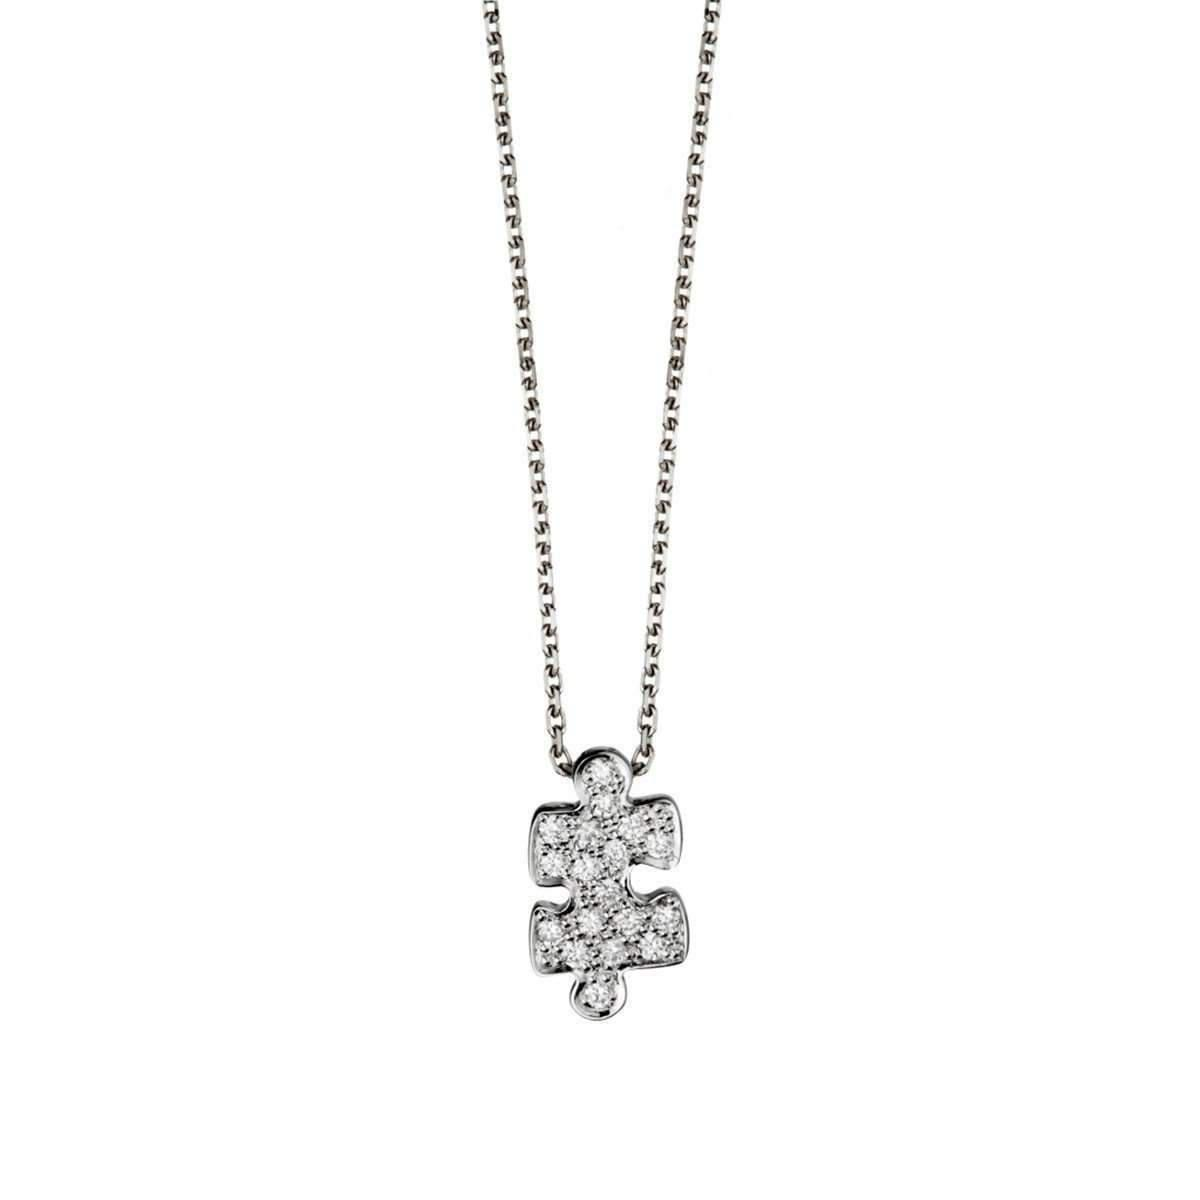 Akillis Puzzle White Gold With Diamonds Pendant Earrings FiSNZ